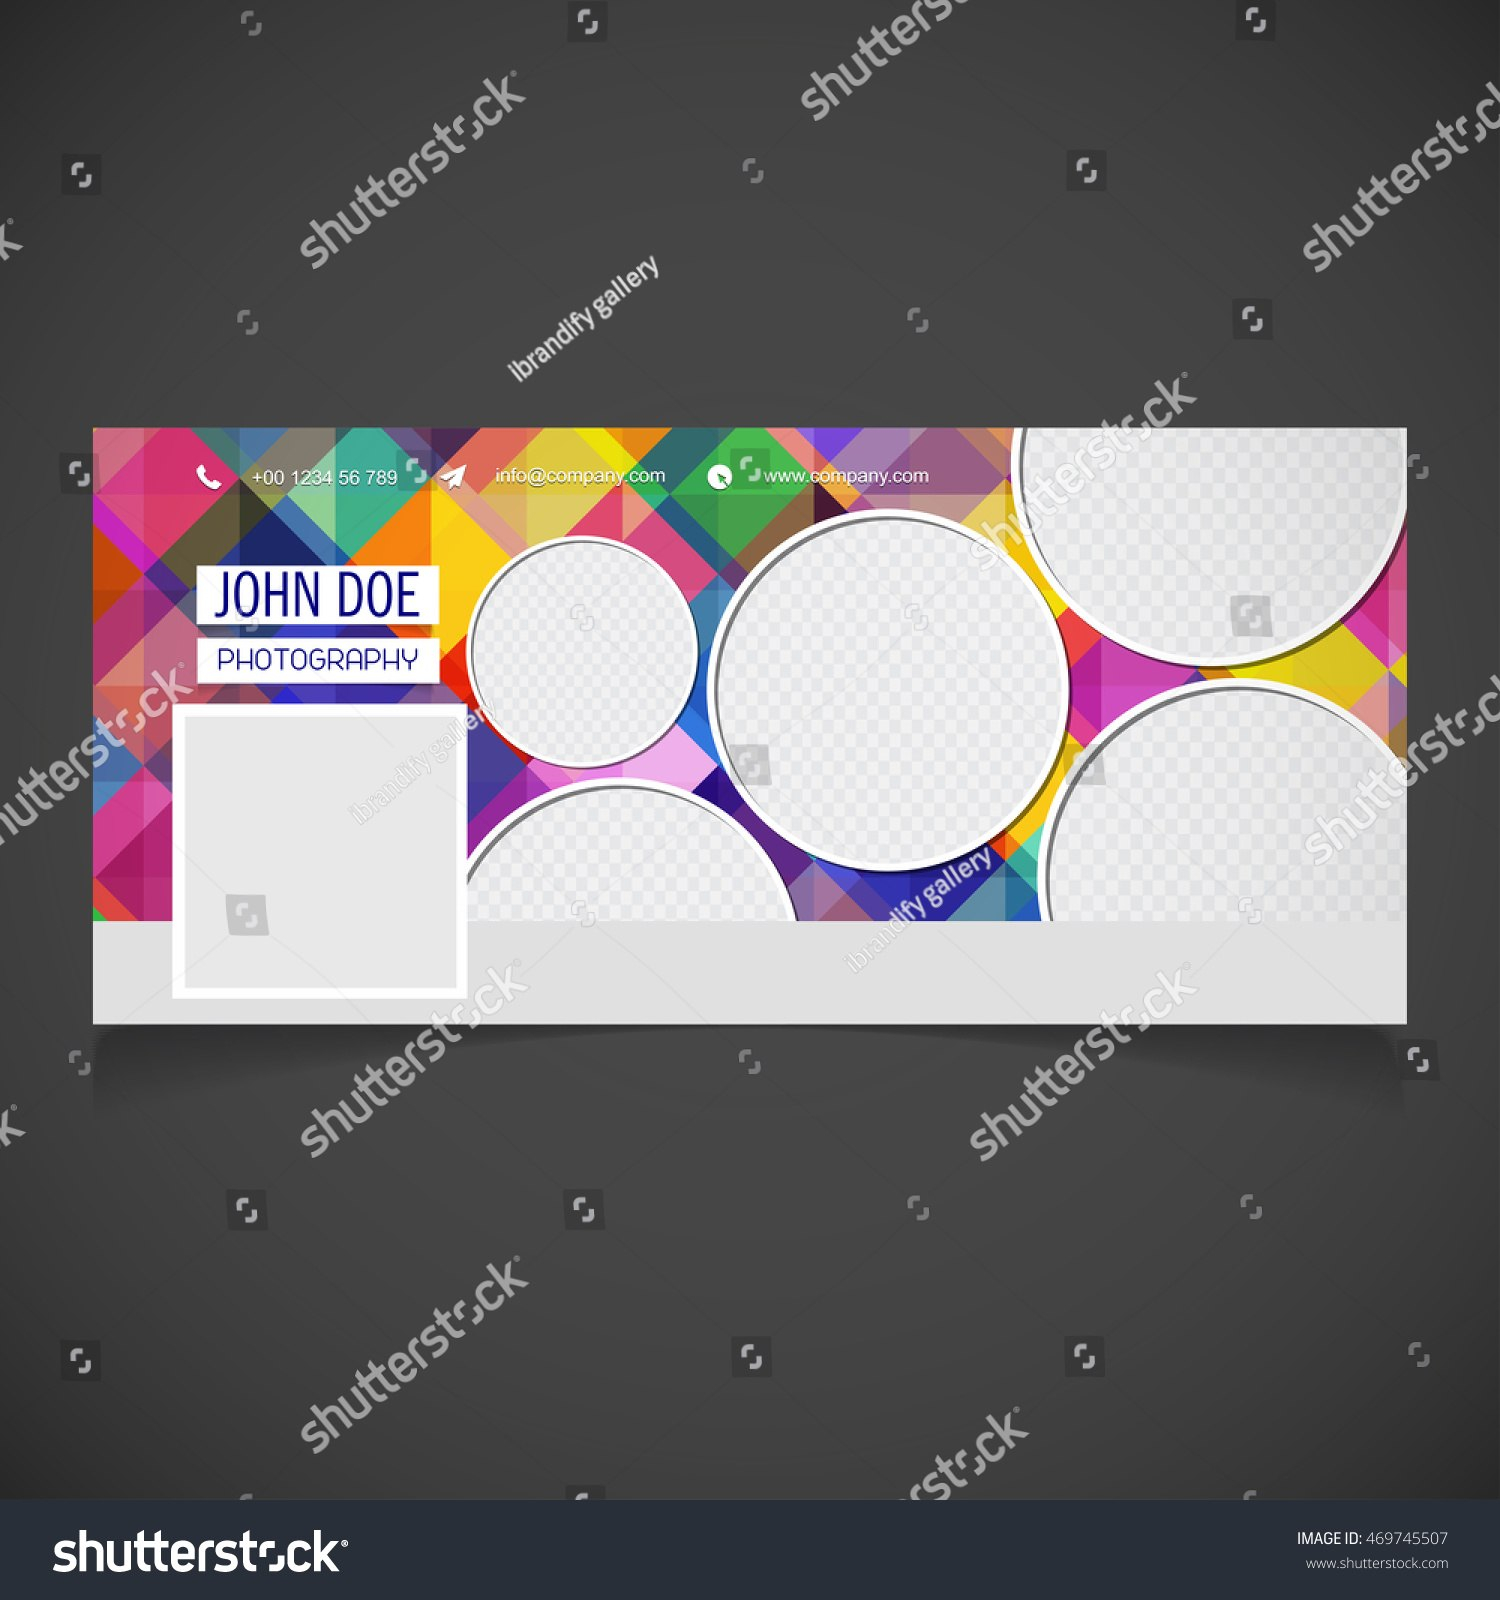 Creative Photography Banner Template Place Image Stockvektorgrafik Within Photography Banner Template